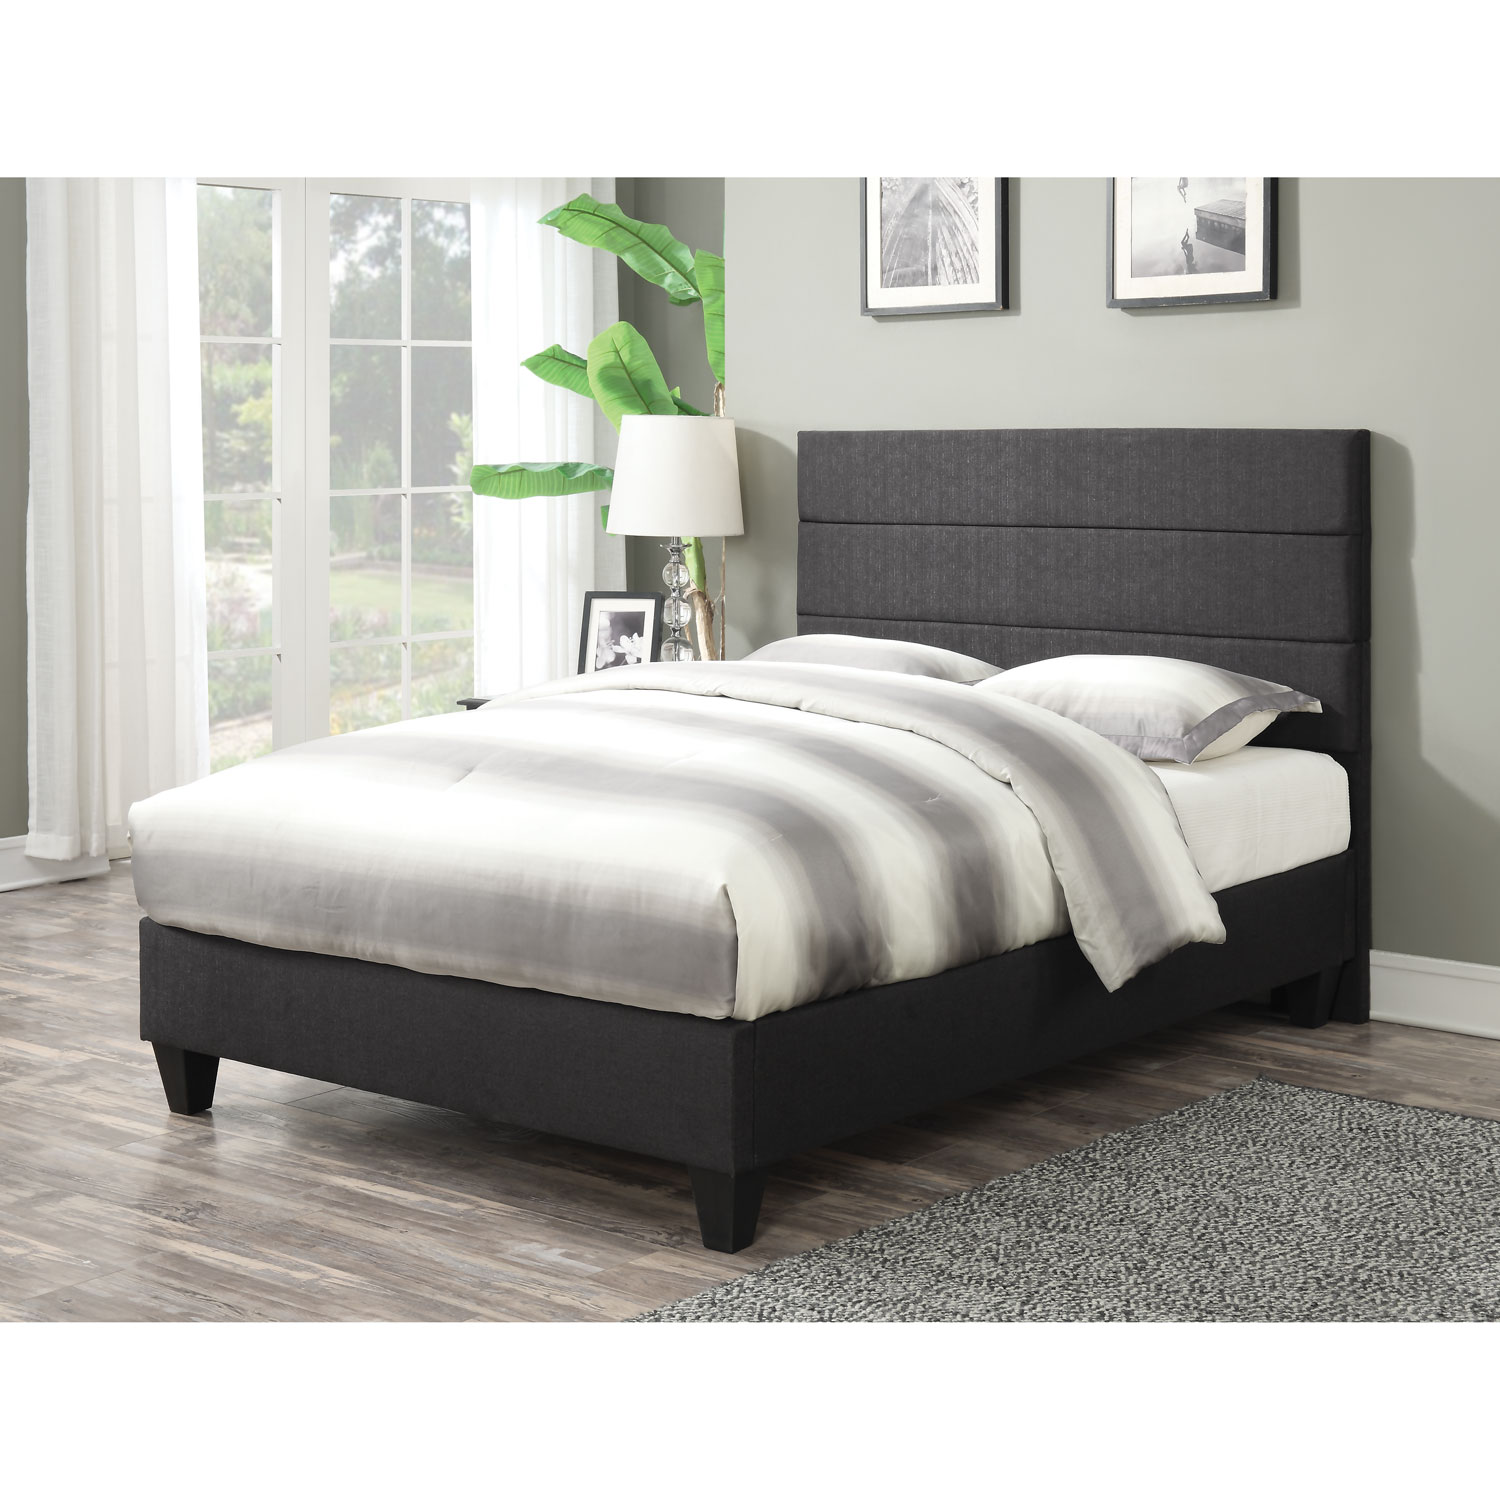 Tate contemporary upholstered platform bed queen night online only